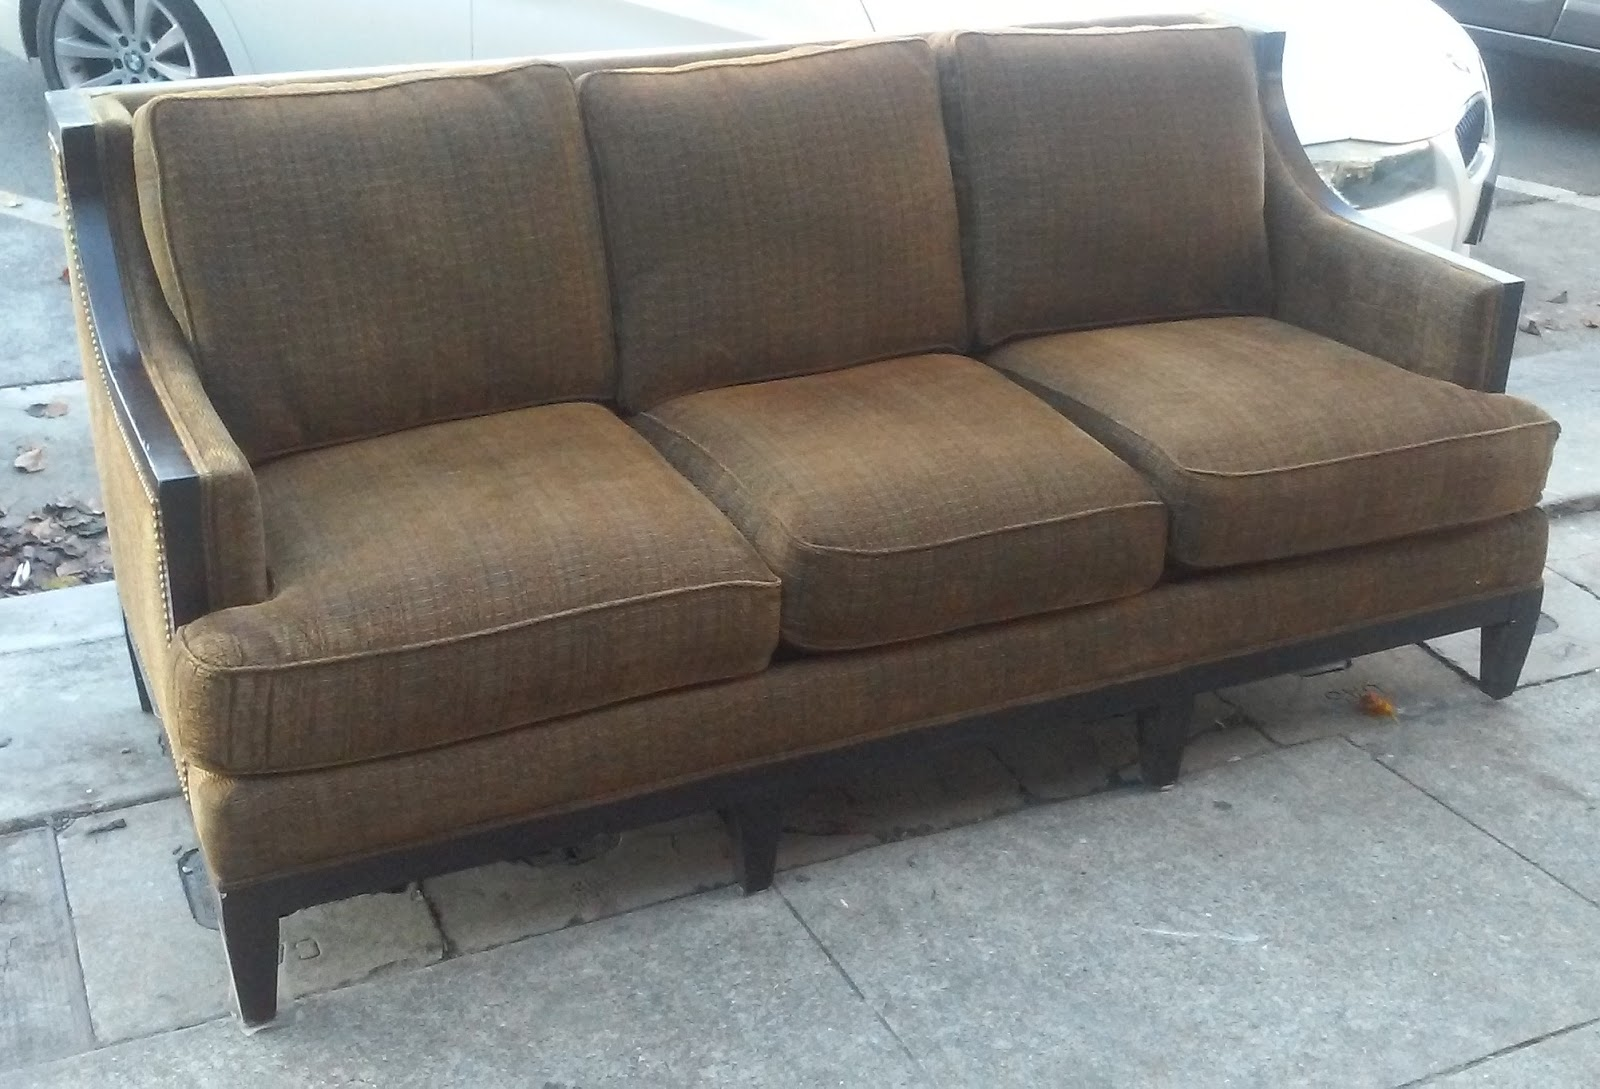 Uhuru furniture collectibles sold reduced rachlin for Reduced furniture